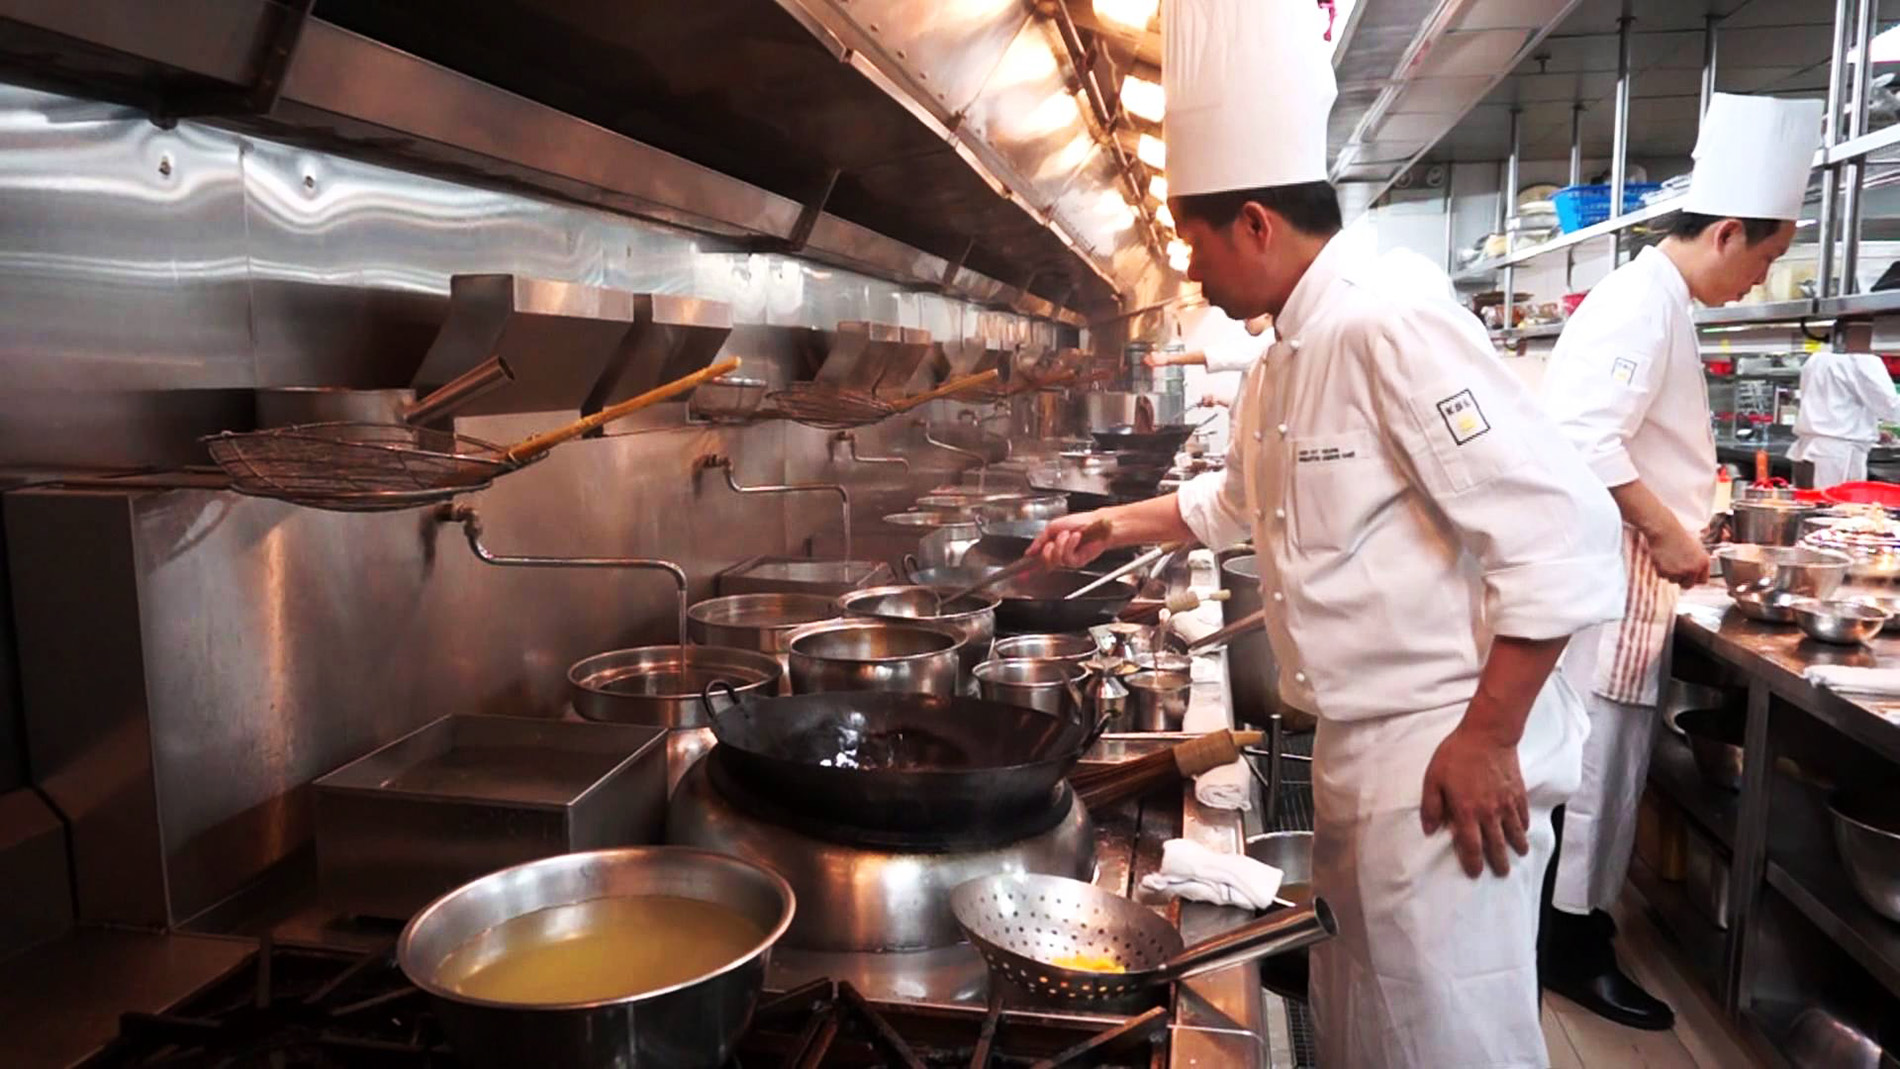 The kitchen at Shang Palace